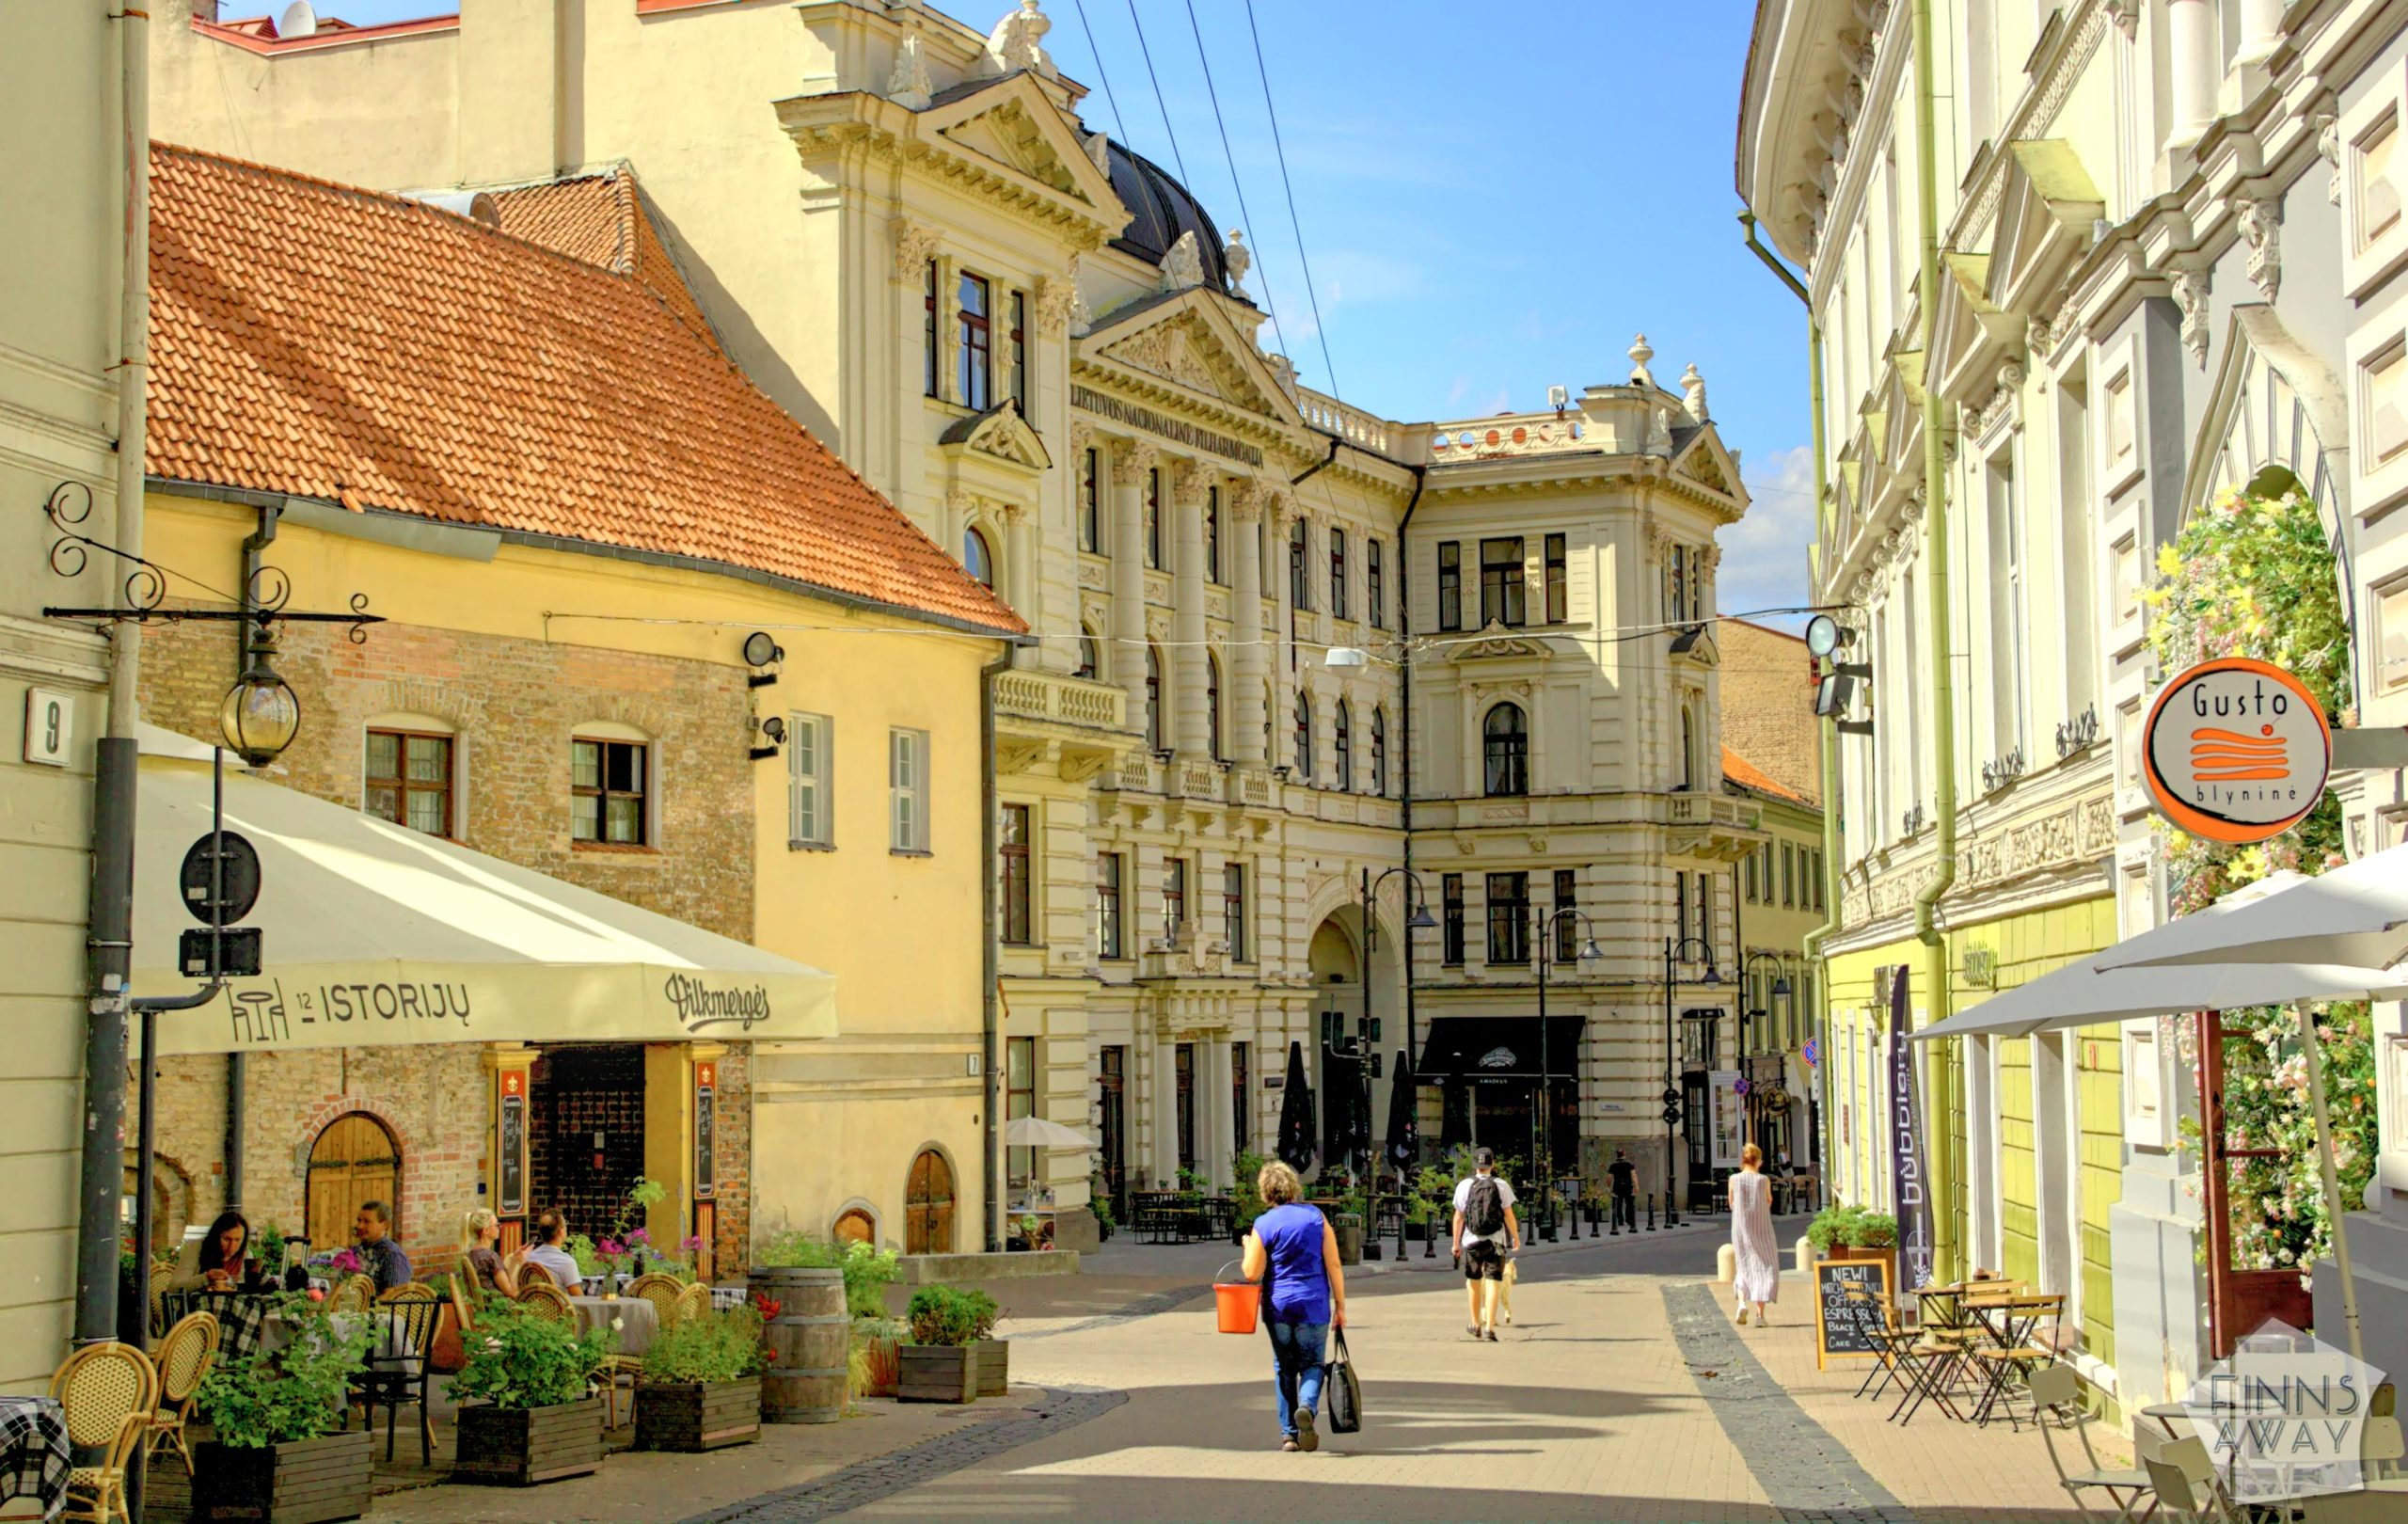 On the streets of the Old Town of Vilnius, Lithuania | FinnsAway Travel Blog